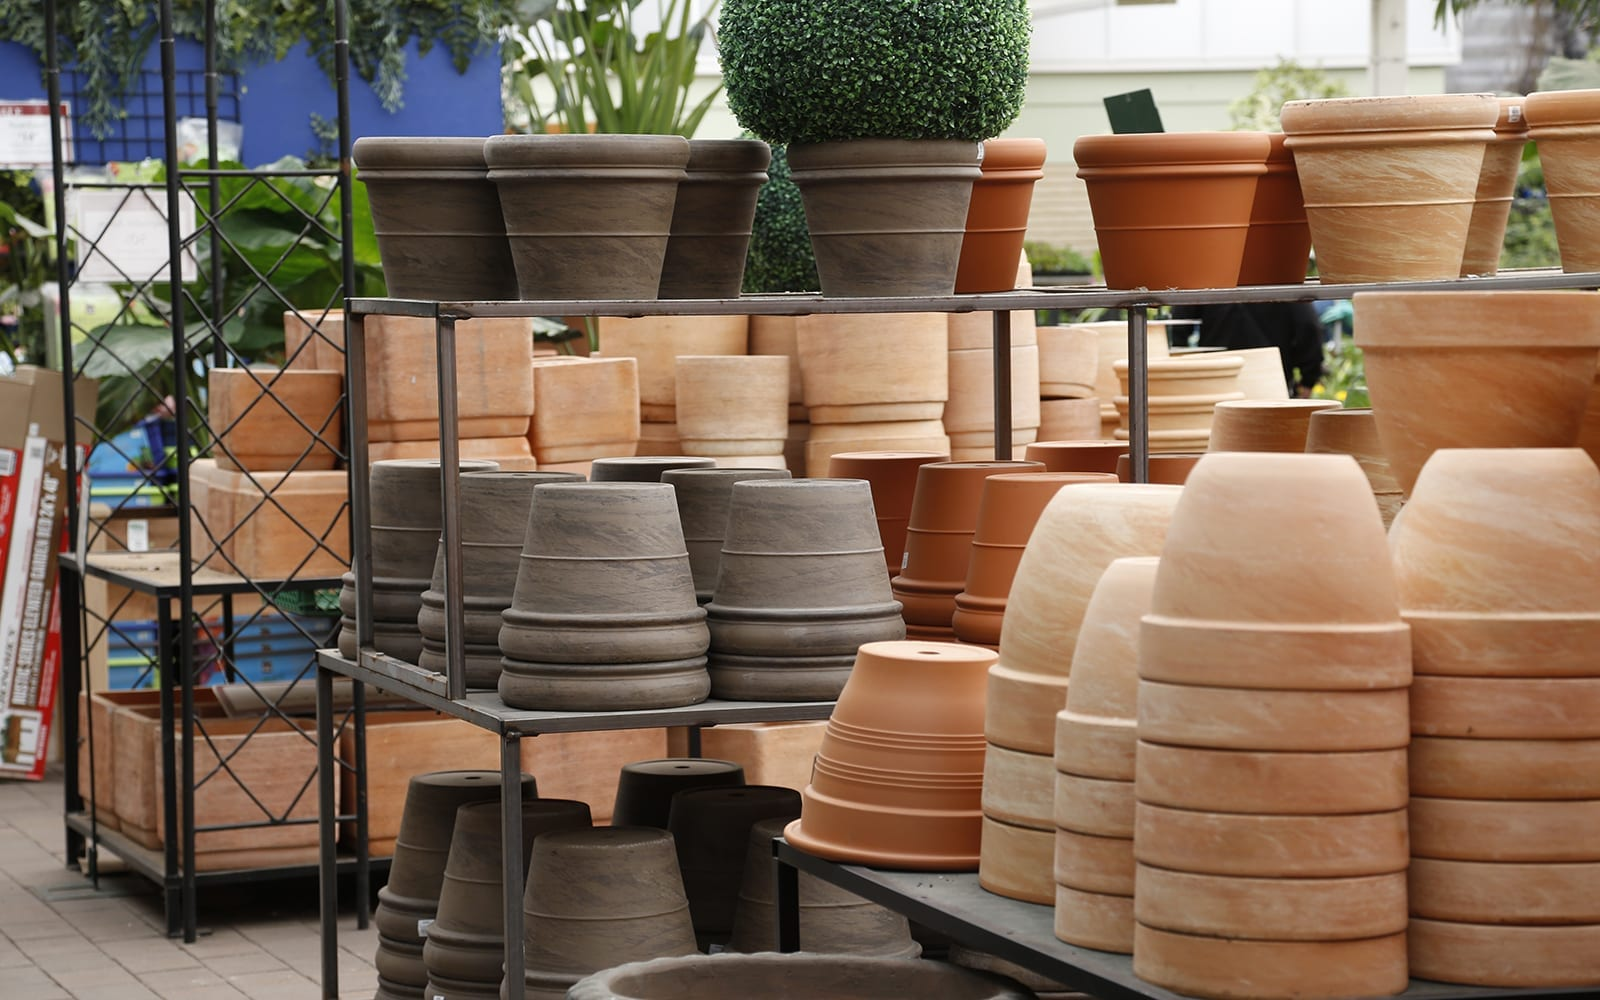 Pottery Section in the Store